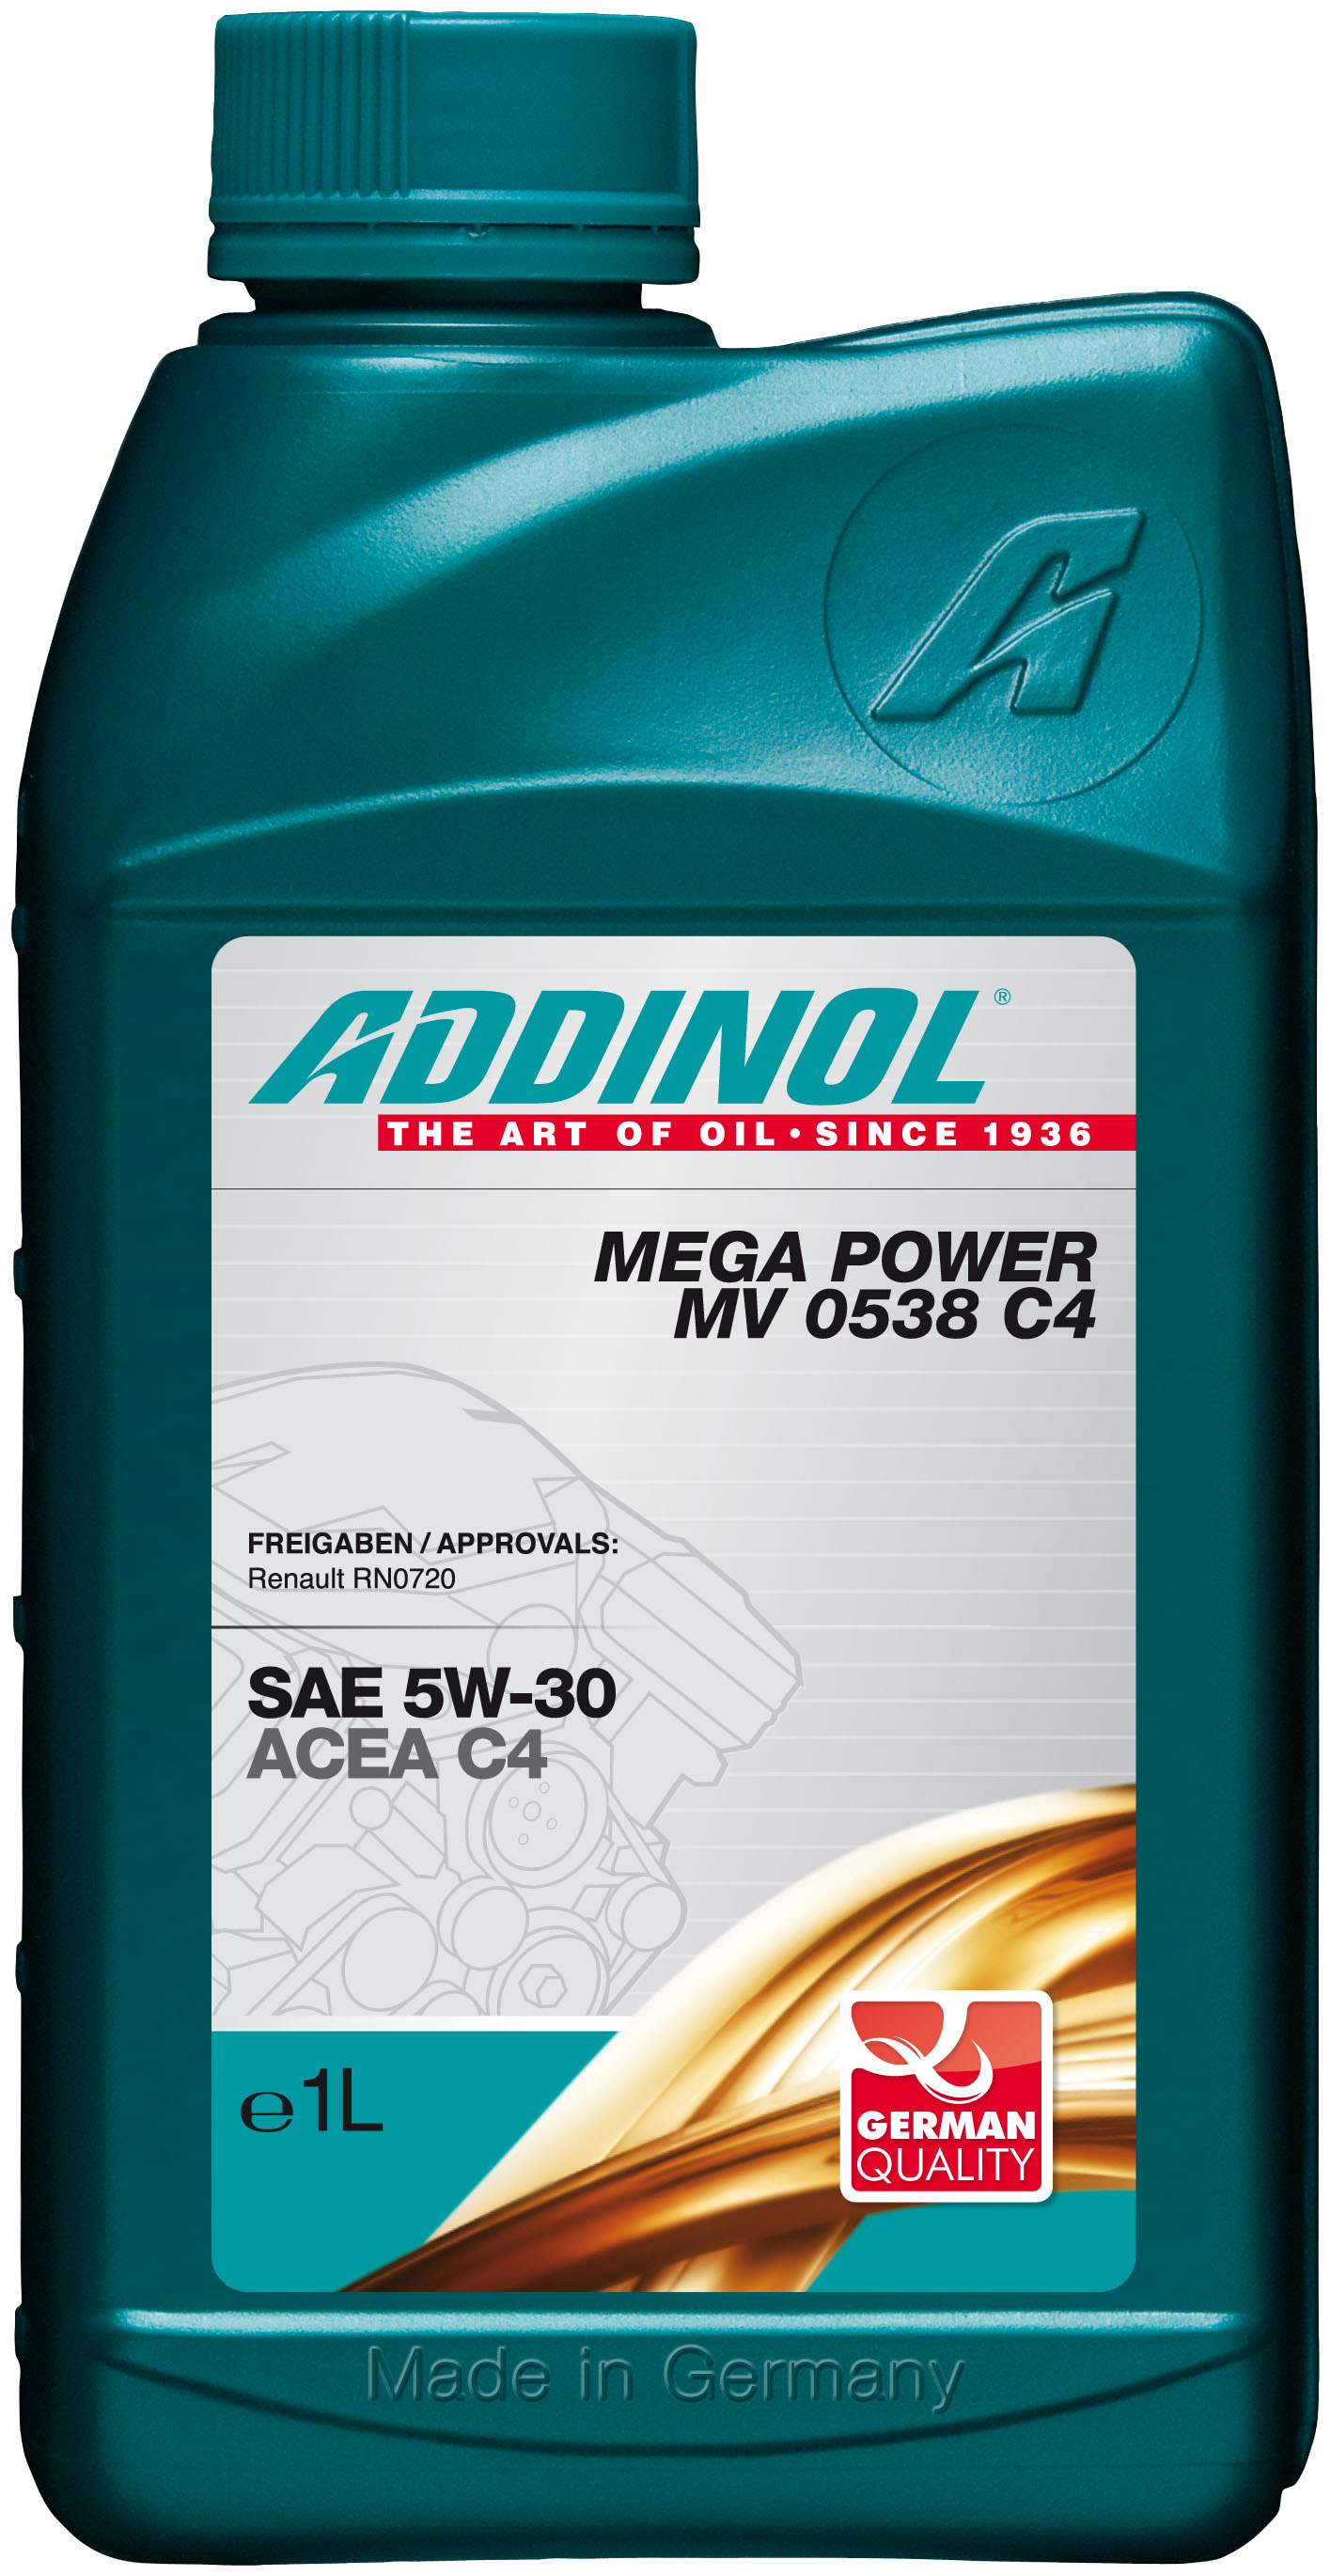 Mega Power MV 0538 C4 5W-30, 1л 4014766073259 ADDINOL – фото